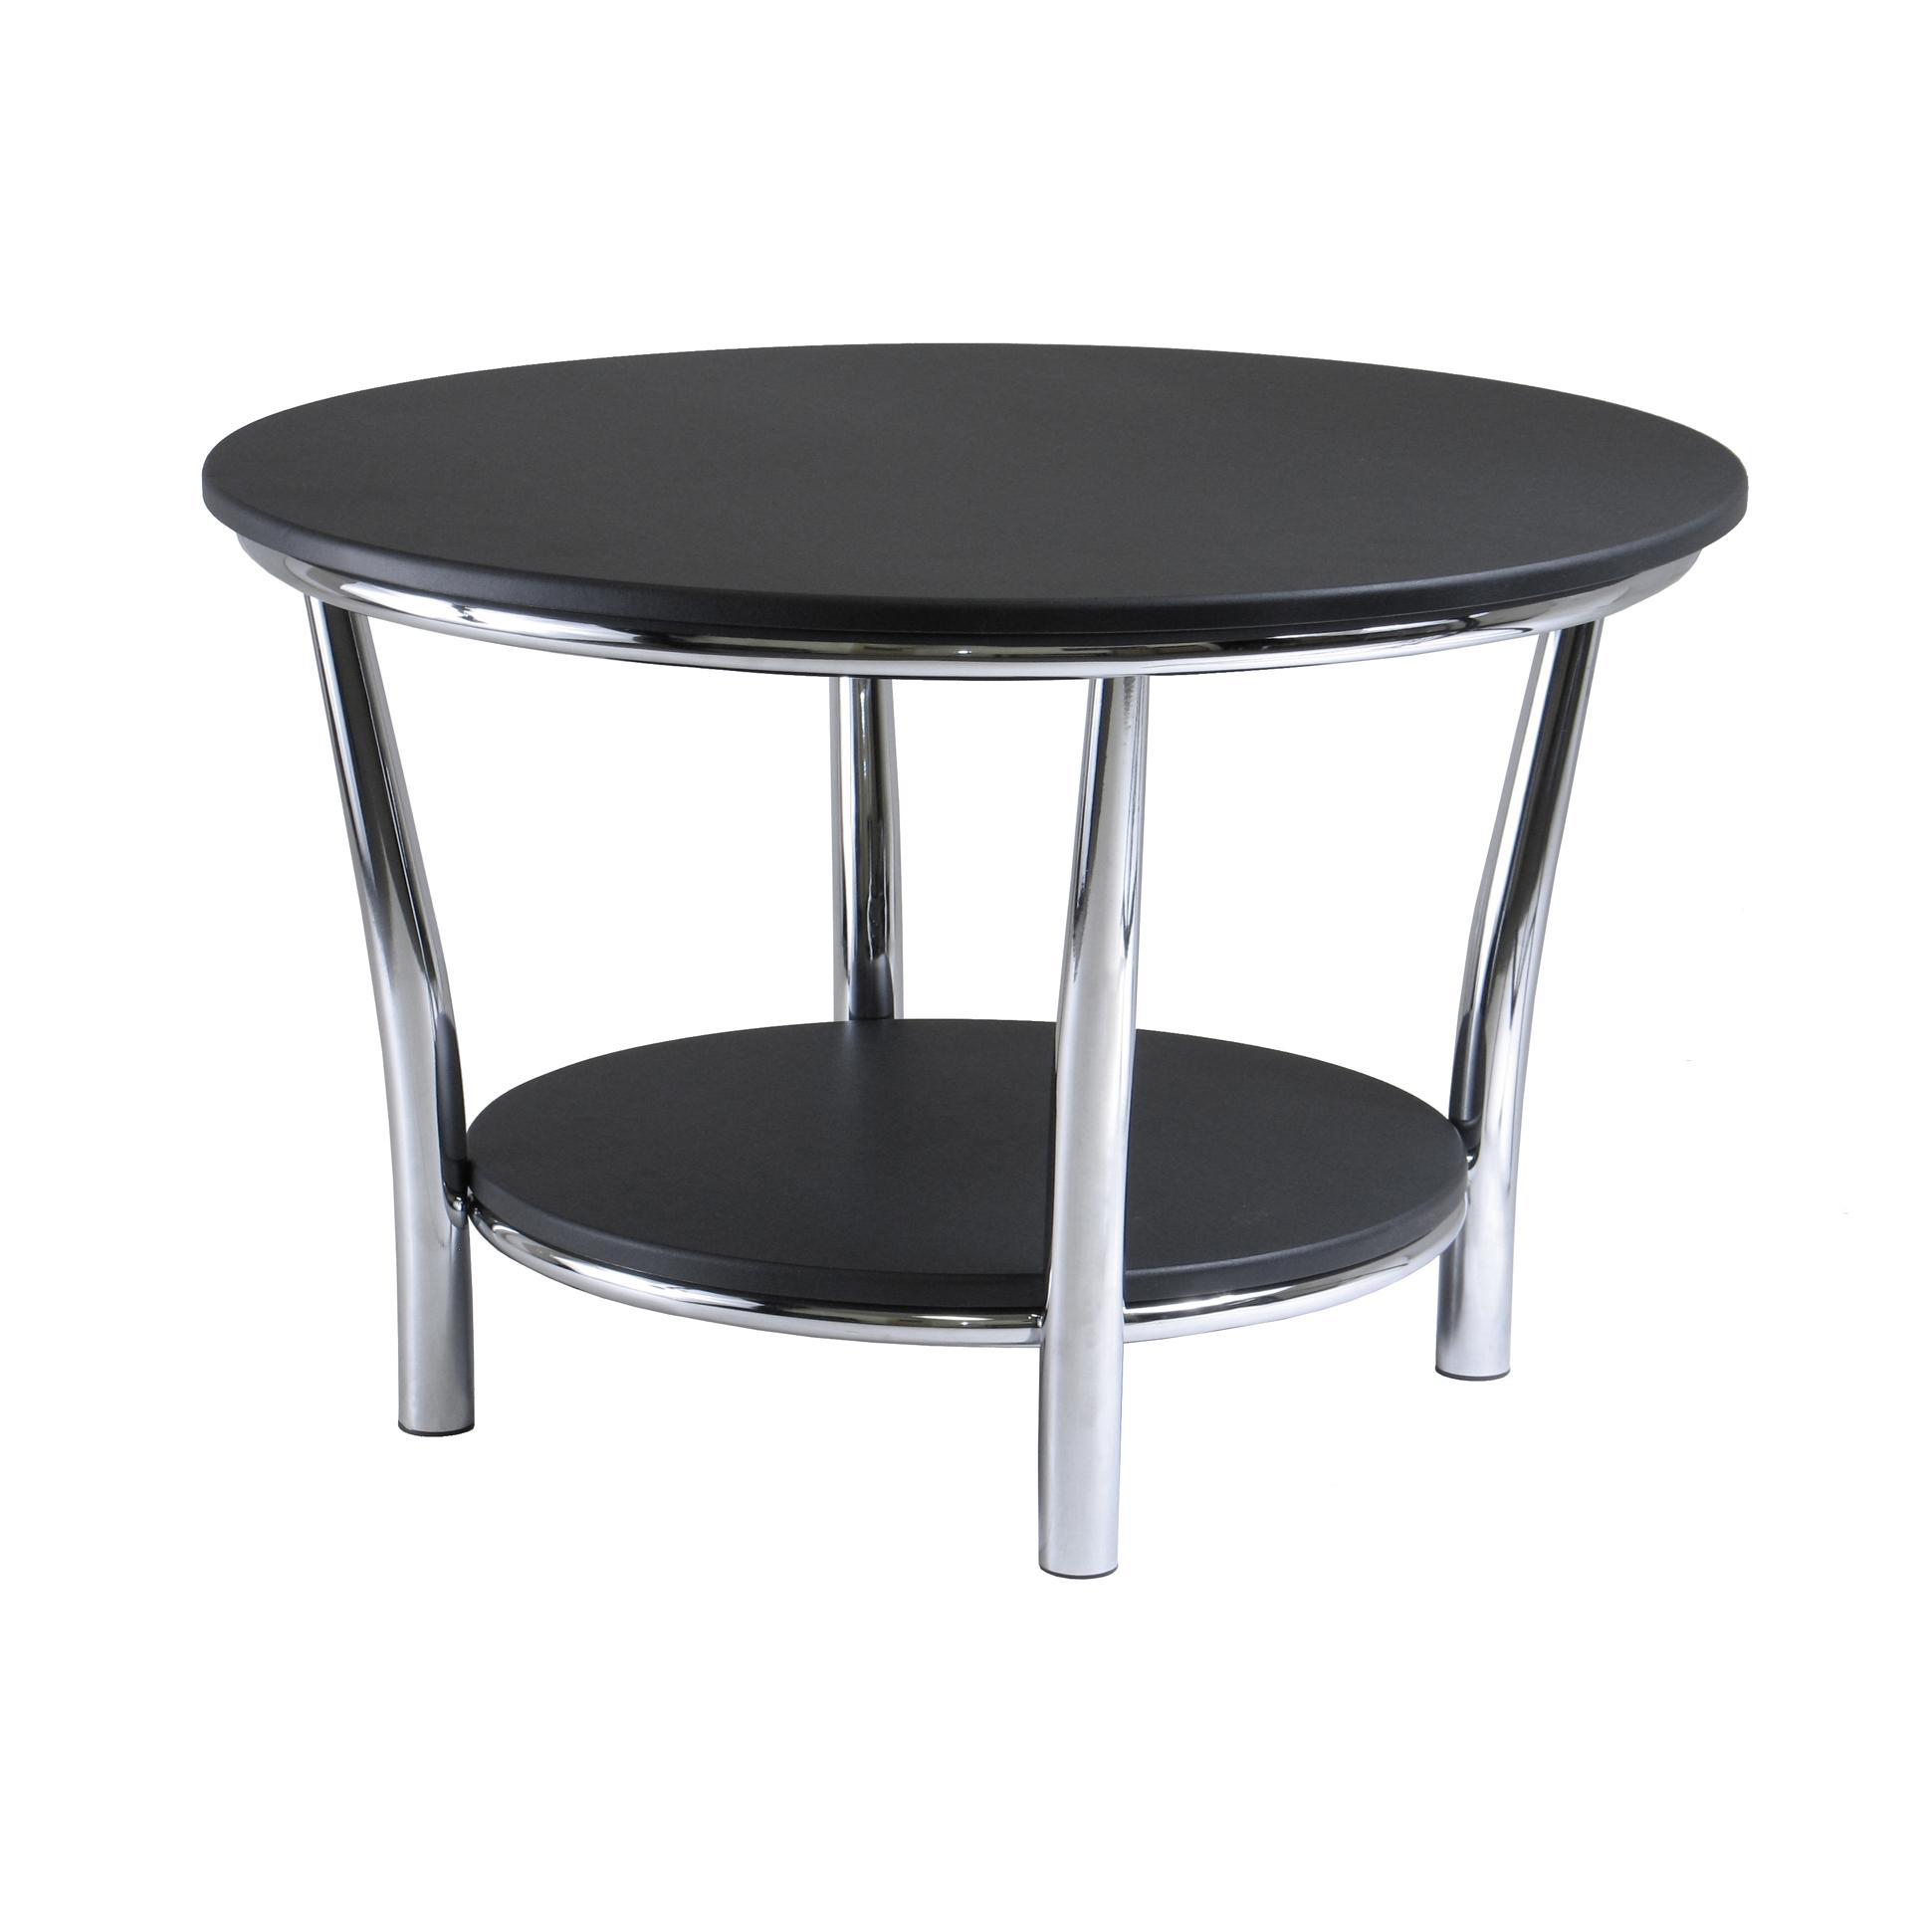 Winsome Wood Maya Round Coffee Table Black Top Metal Legs Amazon